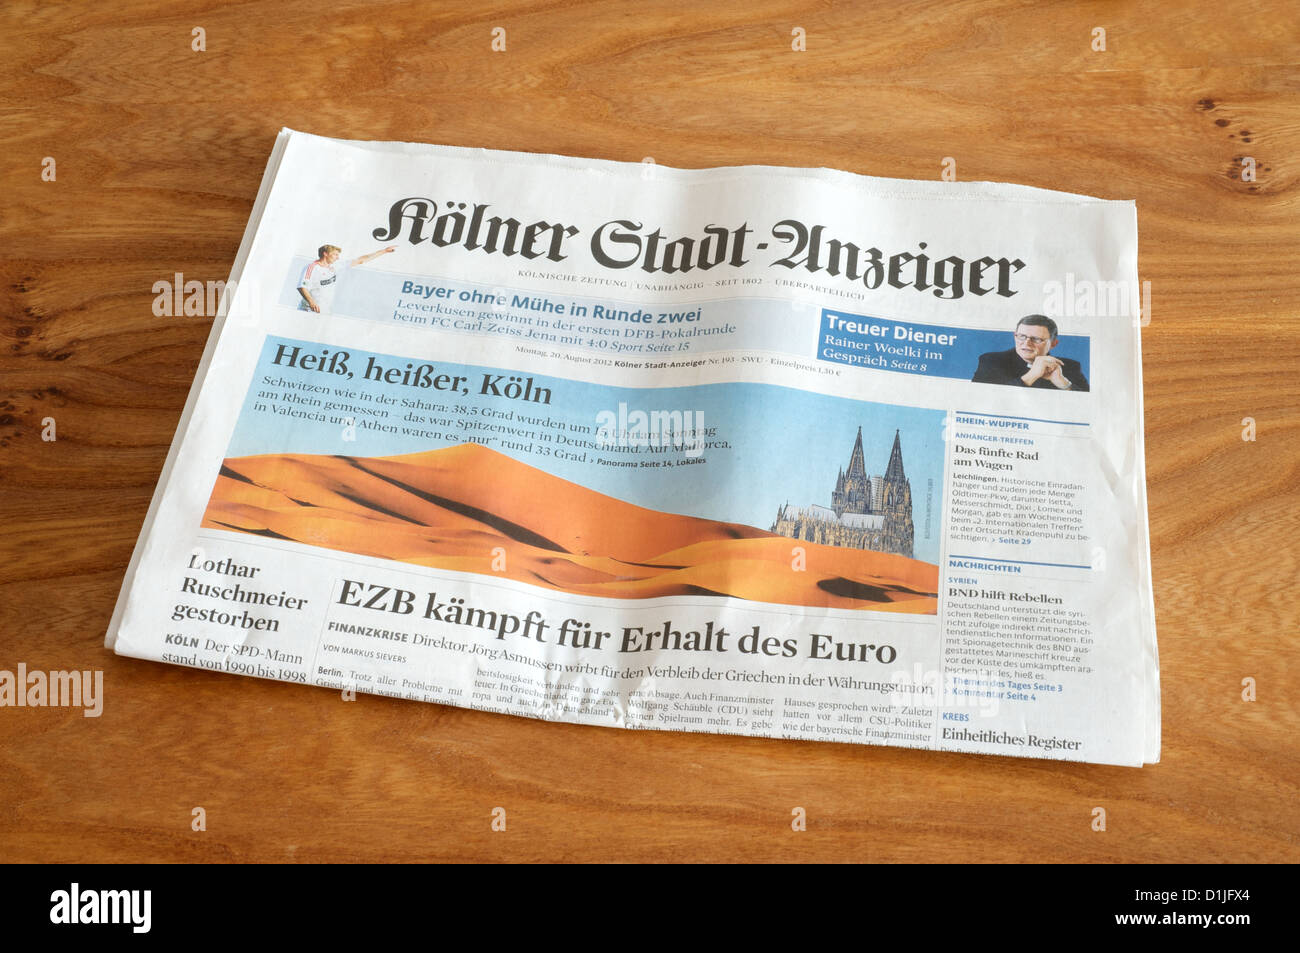 Kolner Stadt Anzeiger with a story of the 2012 summer heat wave in Cologne - Stock Image